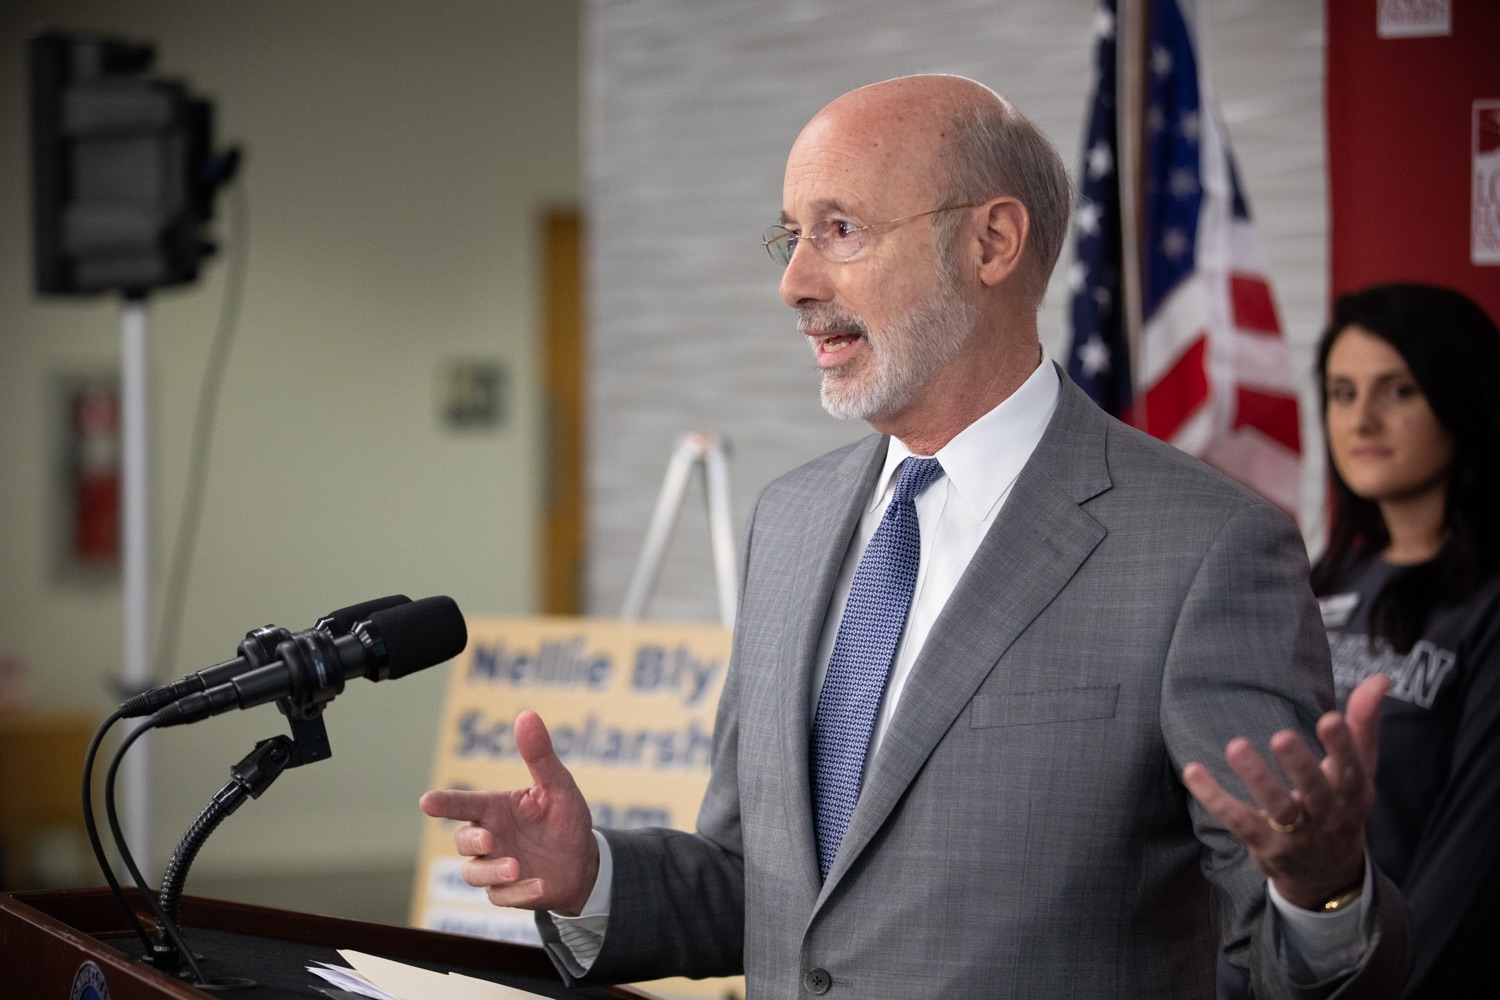 """<a href=""""https://filesource.wostreaming.net/commonwealthofpa/photo/17763_gov_highered_dz_018.jpg"""" target=""""_blank"""">⇣Download Photo<br></a>Governor Tom Wolf speaks to students at Lock Haven University.  Governor Tom Wolf visited Lock Haven University today to launch a tour of the 14 state-owned universities and discuss his proposal to help thousands of low- and middle-class students afford their dream of a college education. Lock Haven, PA  February 12, 2020"""